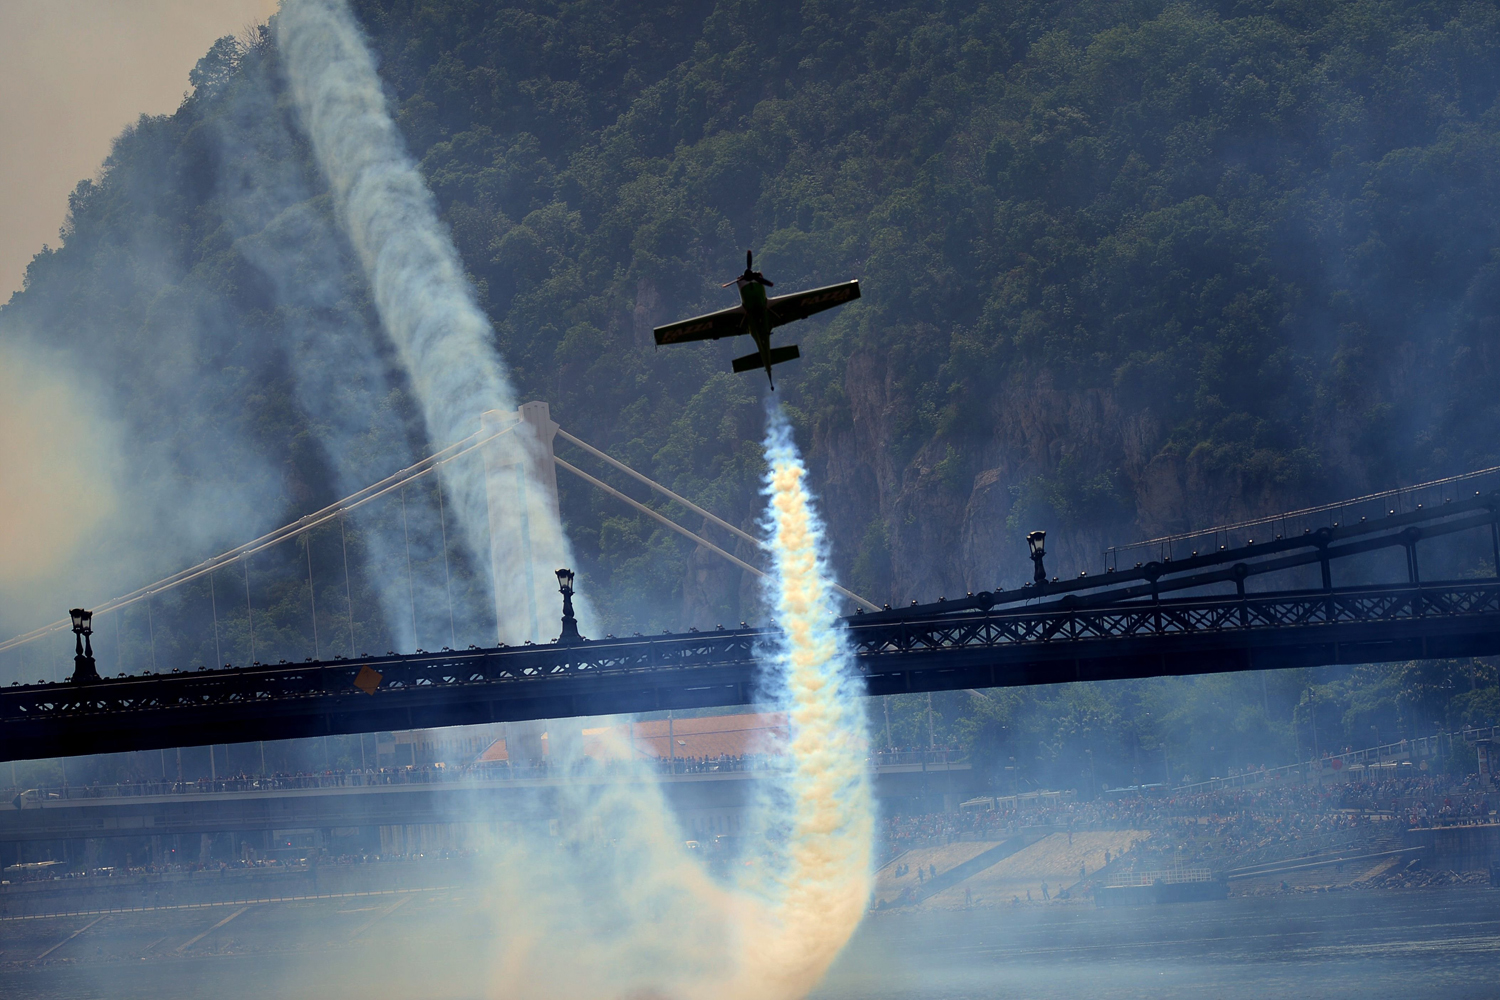 Hungarian pilot and European champion Zoltan Veres flies under the oldest Hungarian bridge, the 'Lanchid' (Chain Bridge) with his 'MXS' type plane on May 1, 2014 during a Red Bull flying and car show around the Danube River of Budapest downtown.